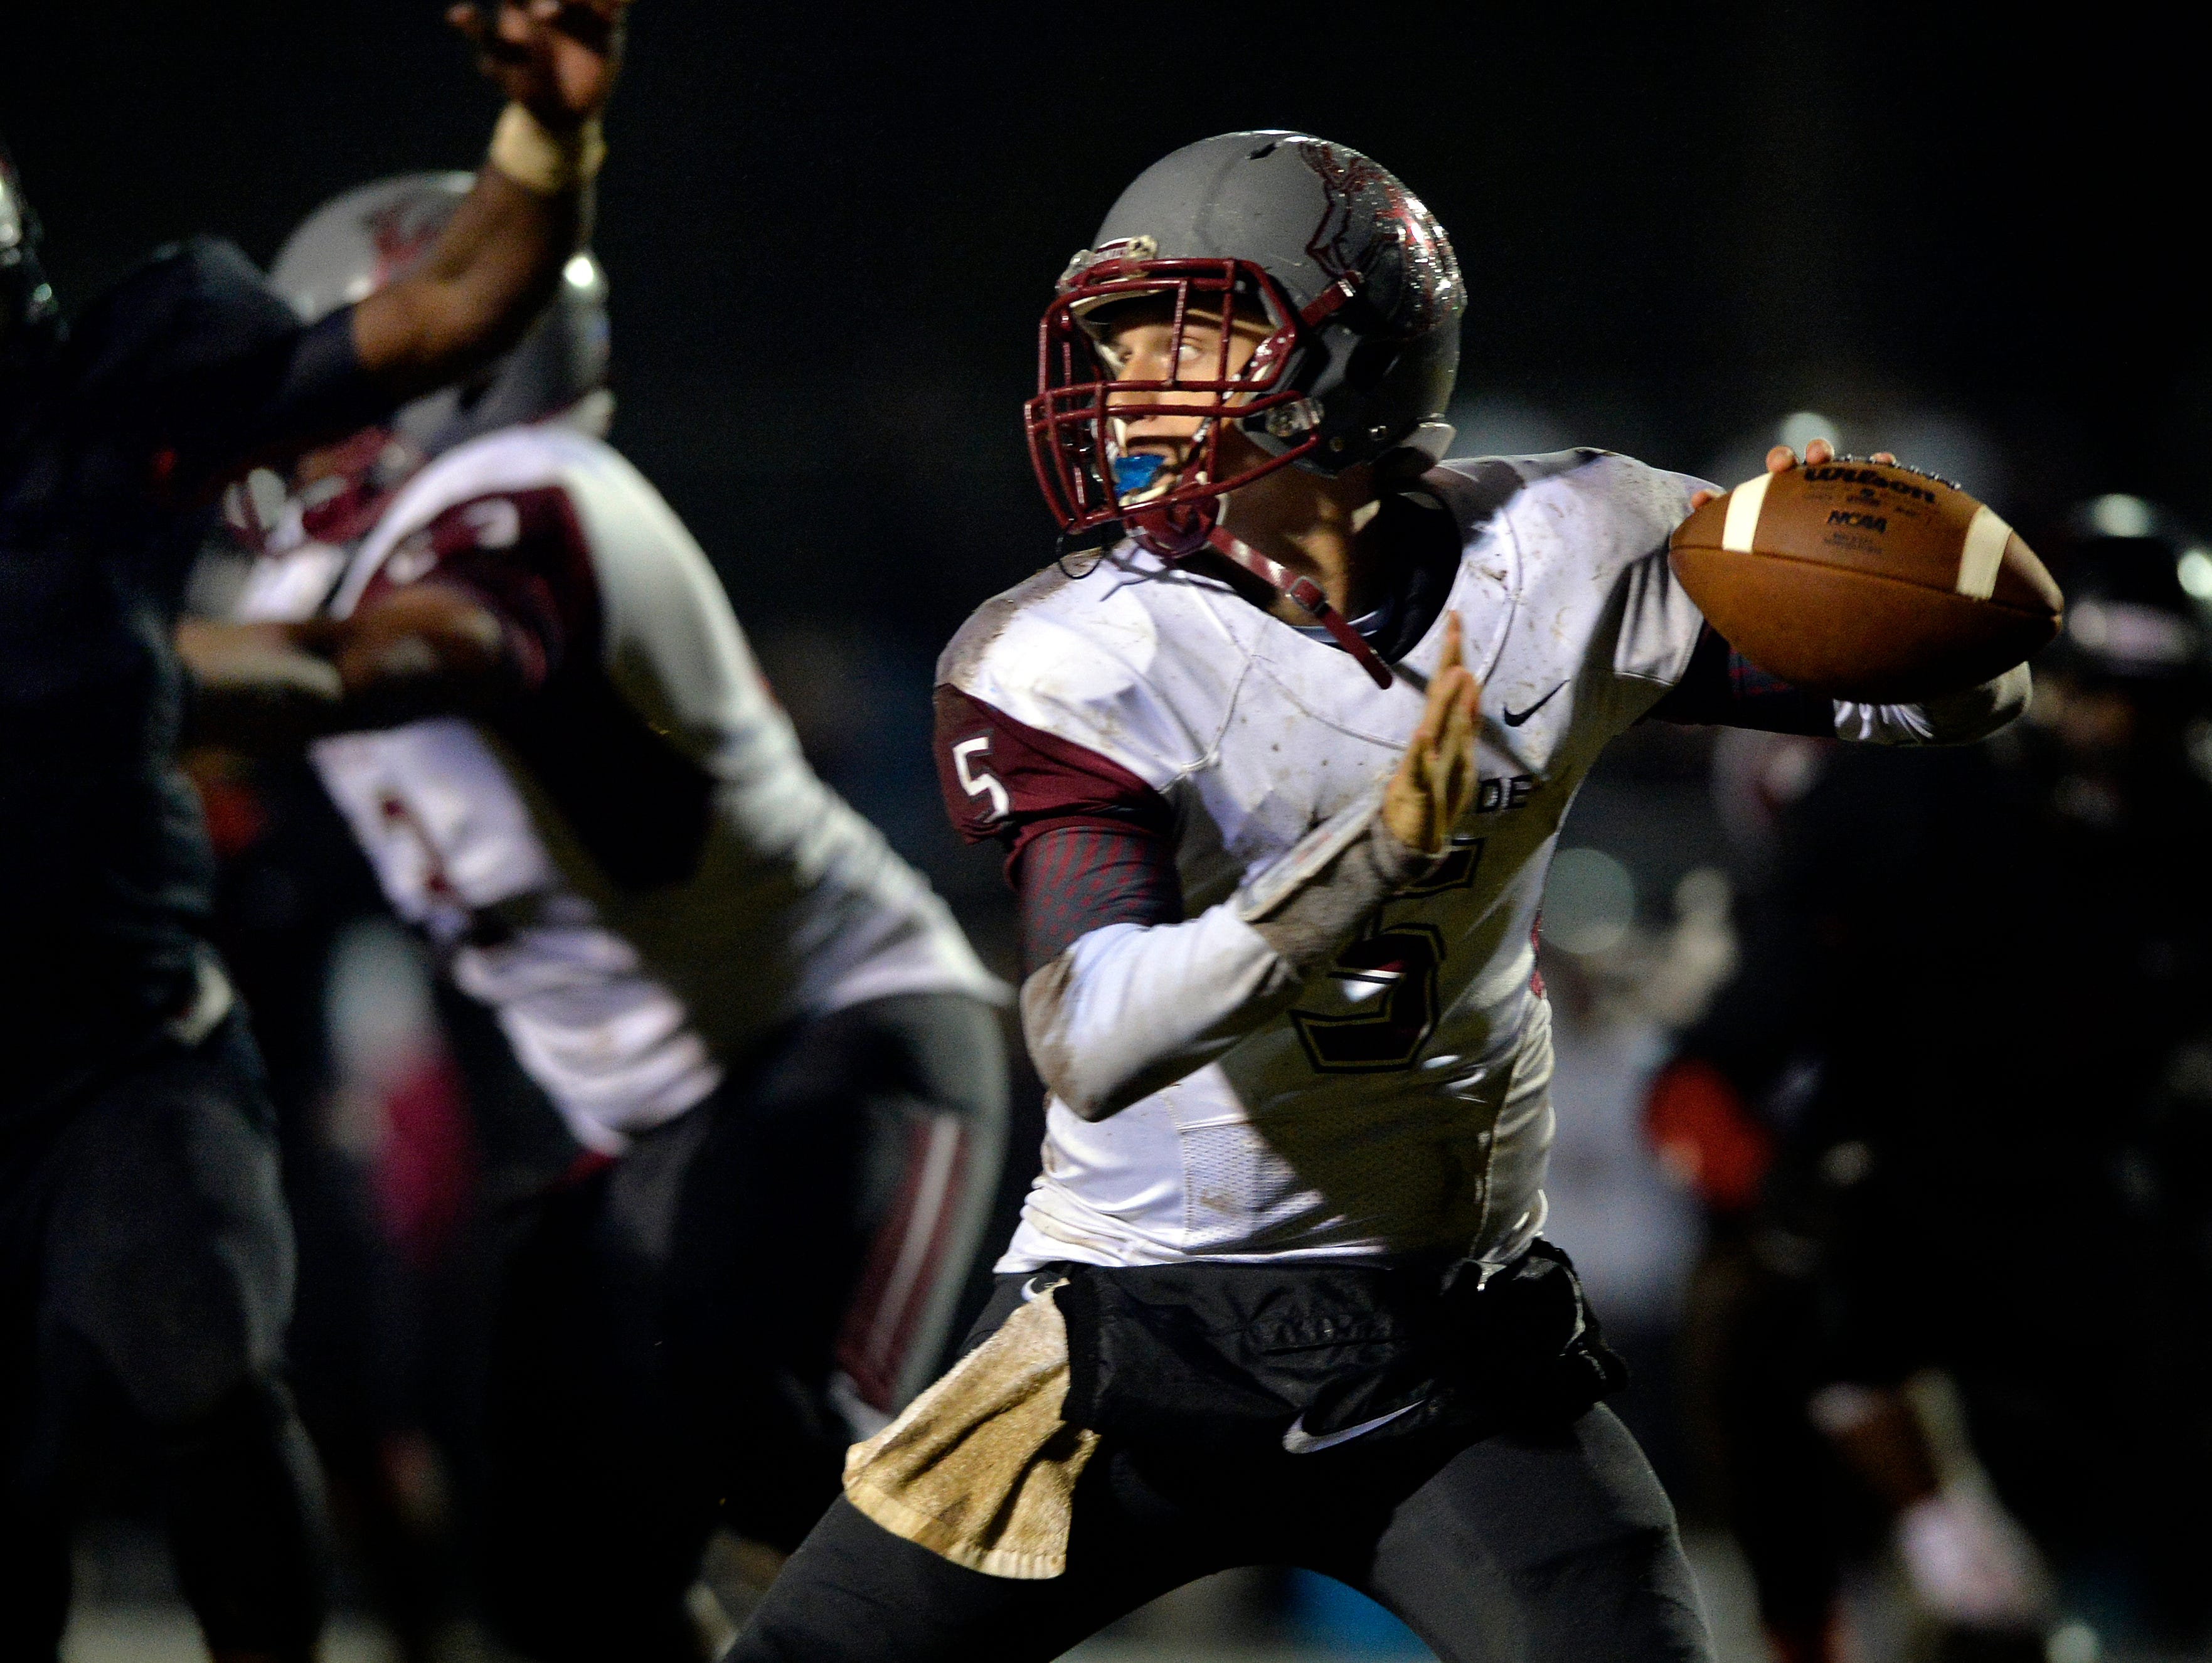 Westside quarterback Jackson Williamson (5) drops back to pass against Hillcrest in a Region 1-AAAA game at Hillcrest High School on Friday, October 2, 2015.